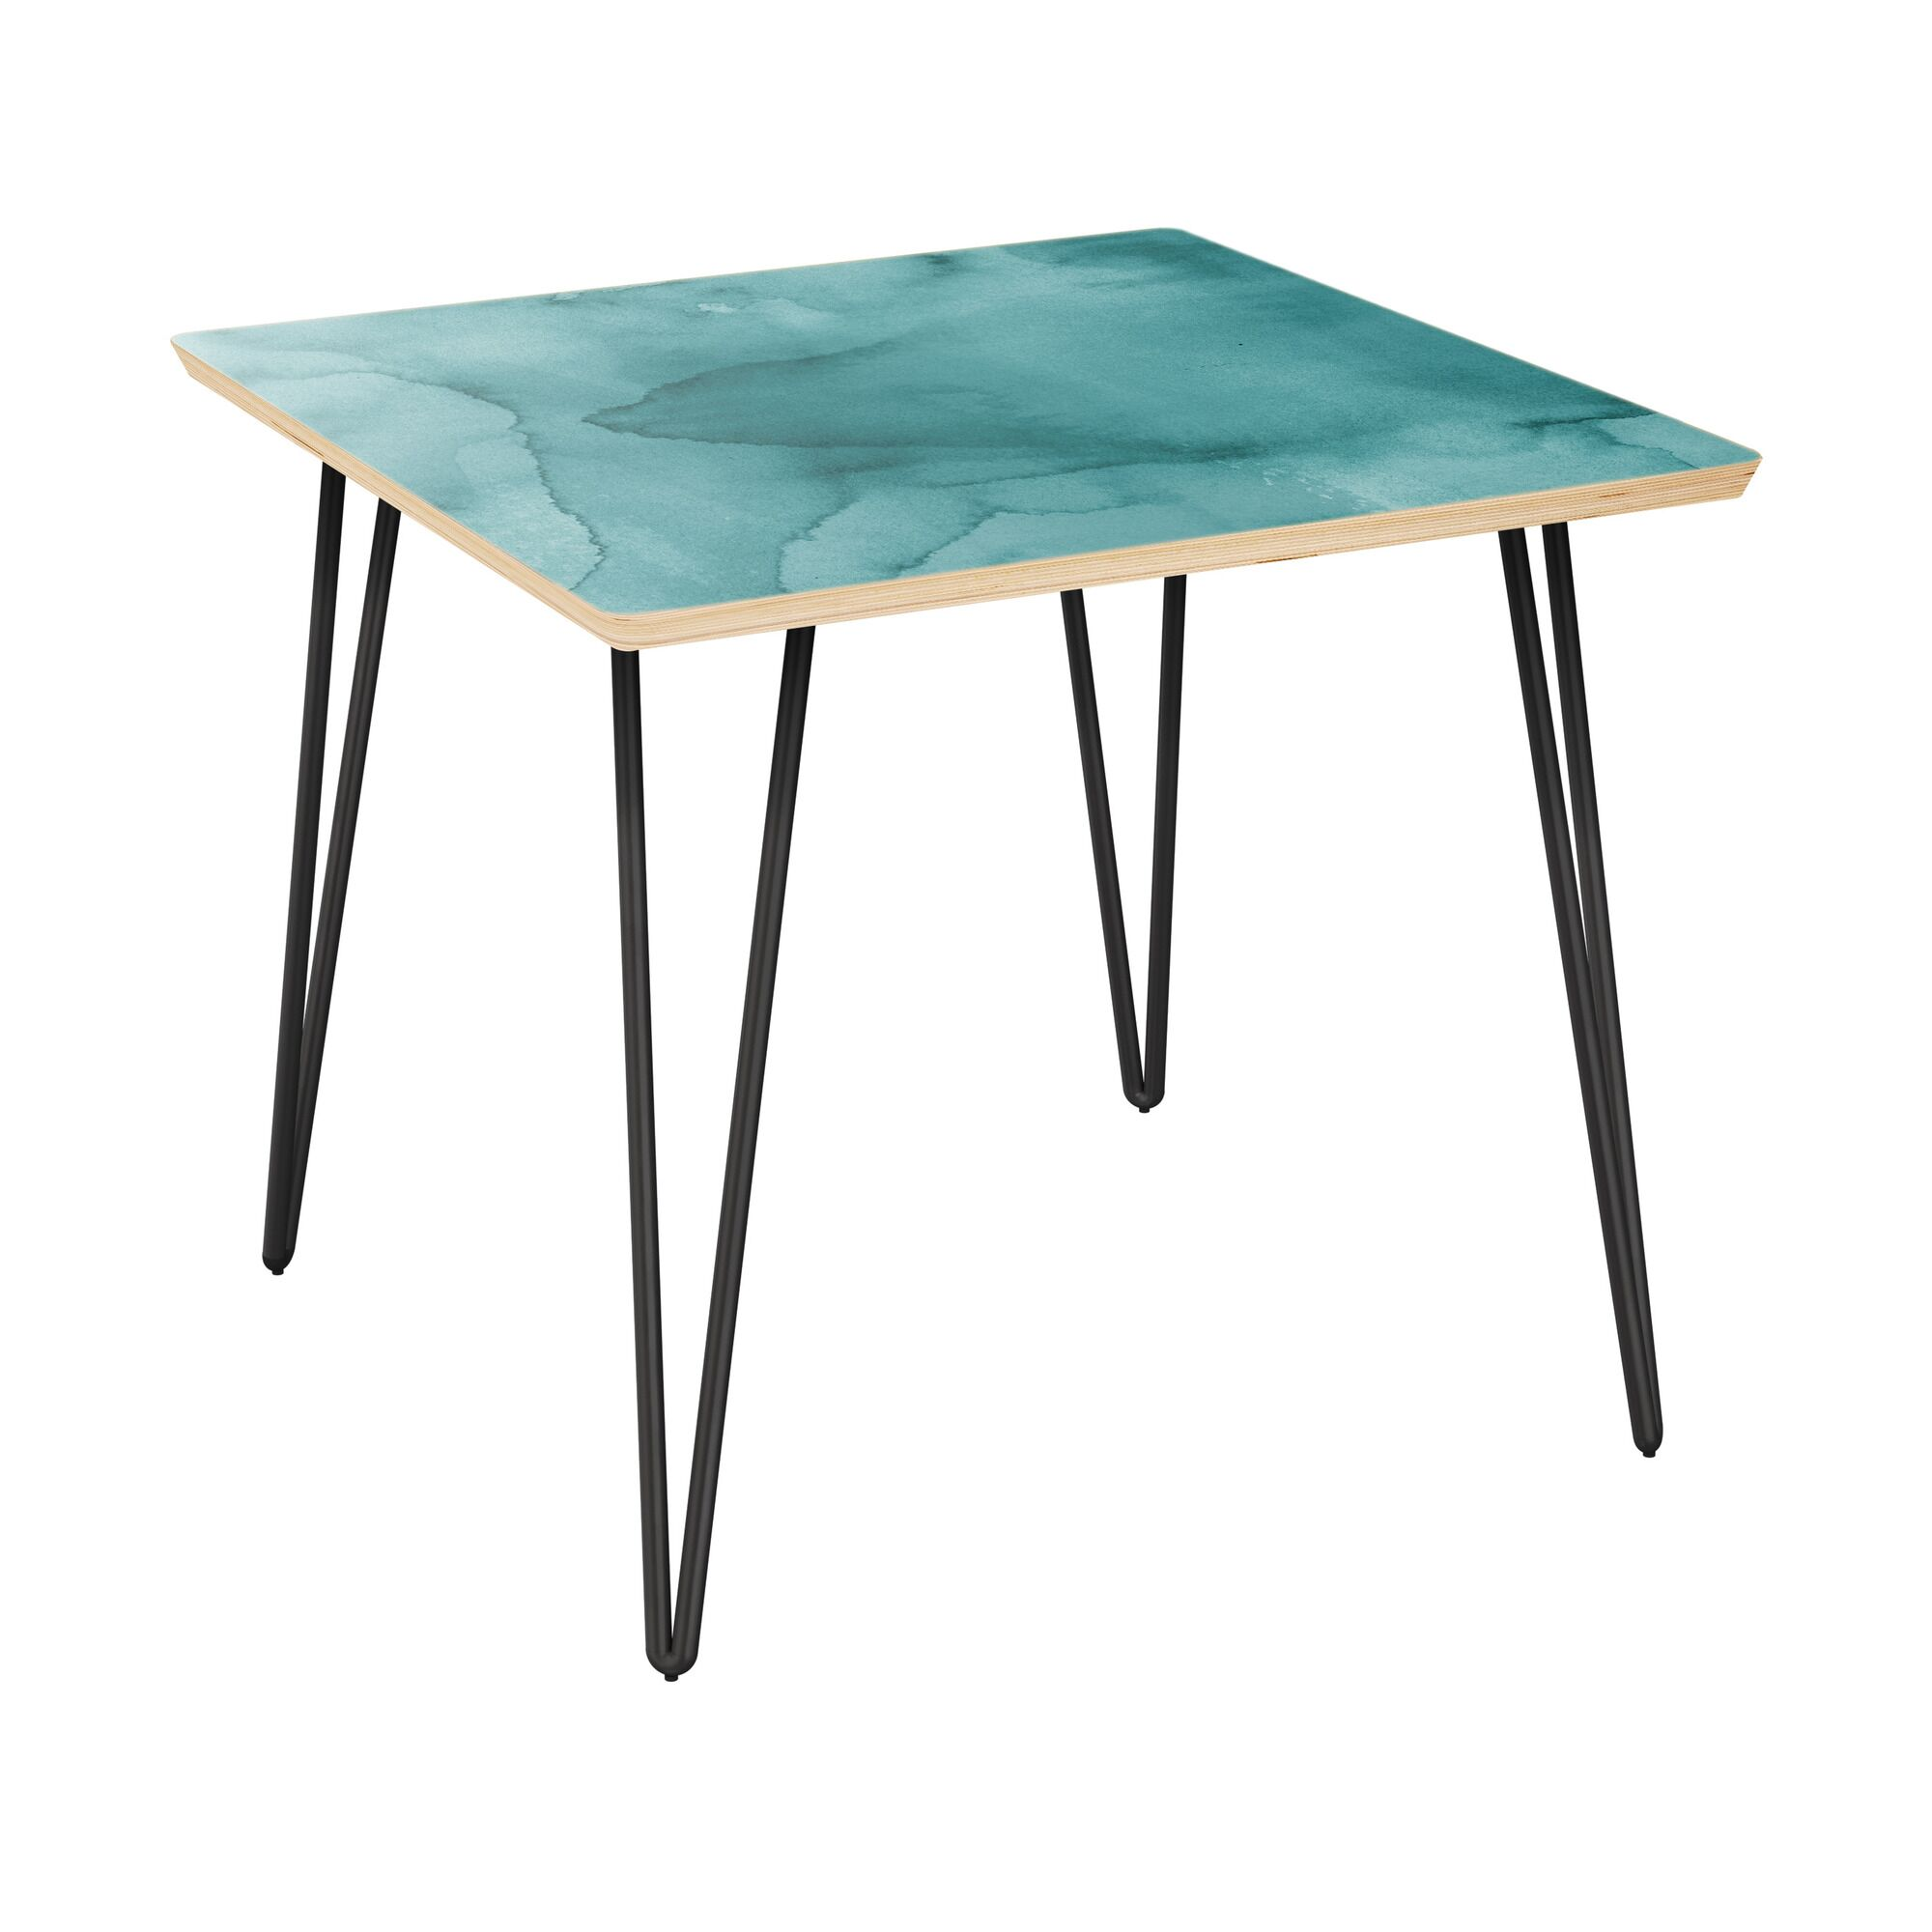 Ratner End Table Table Top Boarder Color: Natural, Table Base Color: Black, Table Top Color: Turquoise